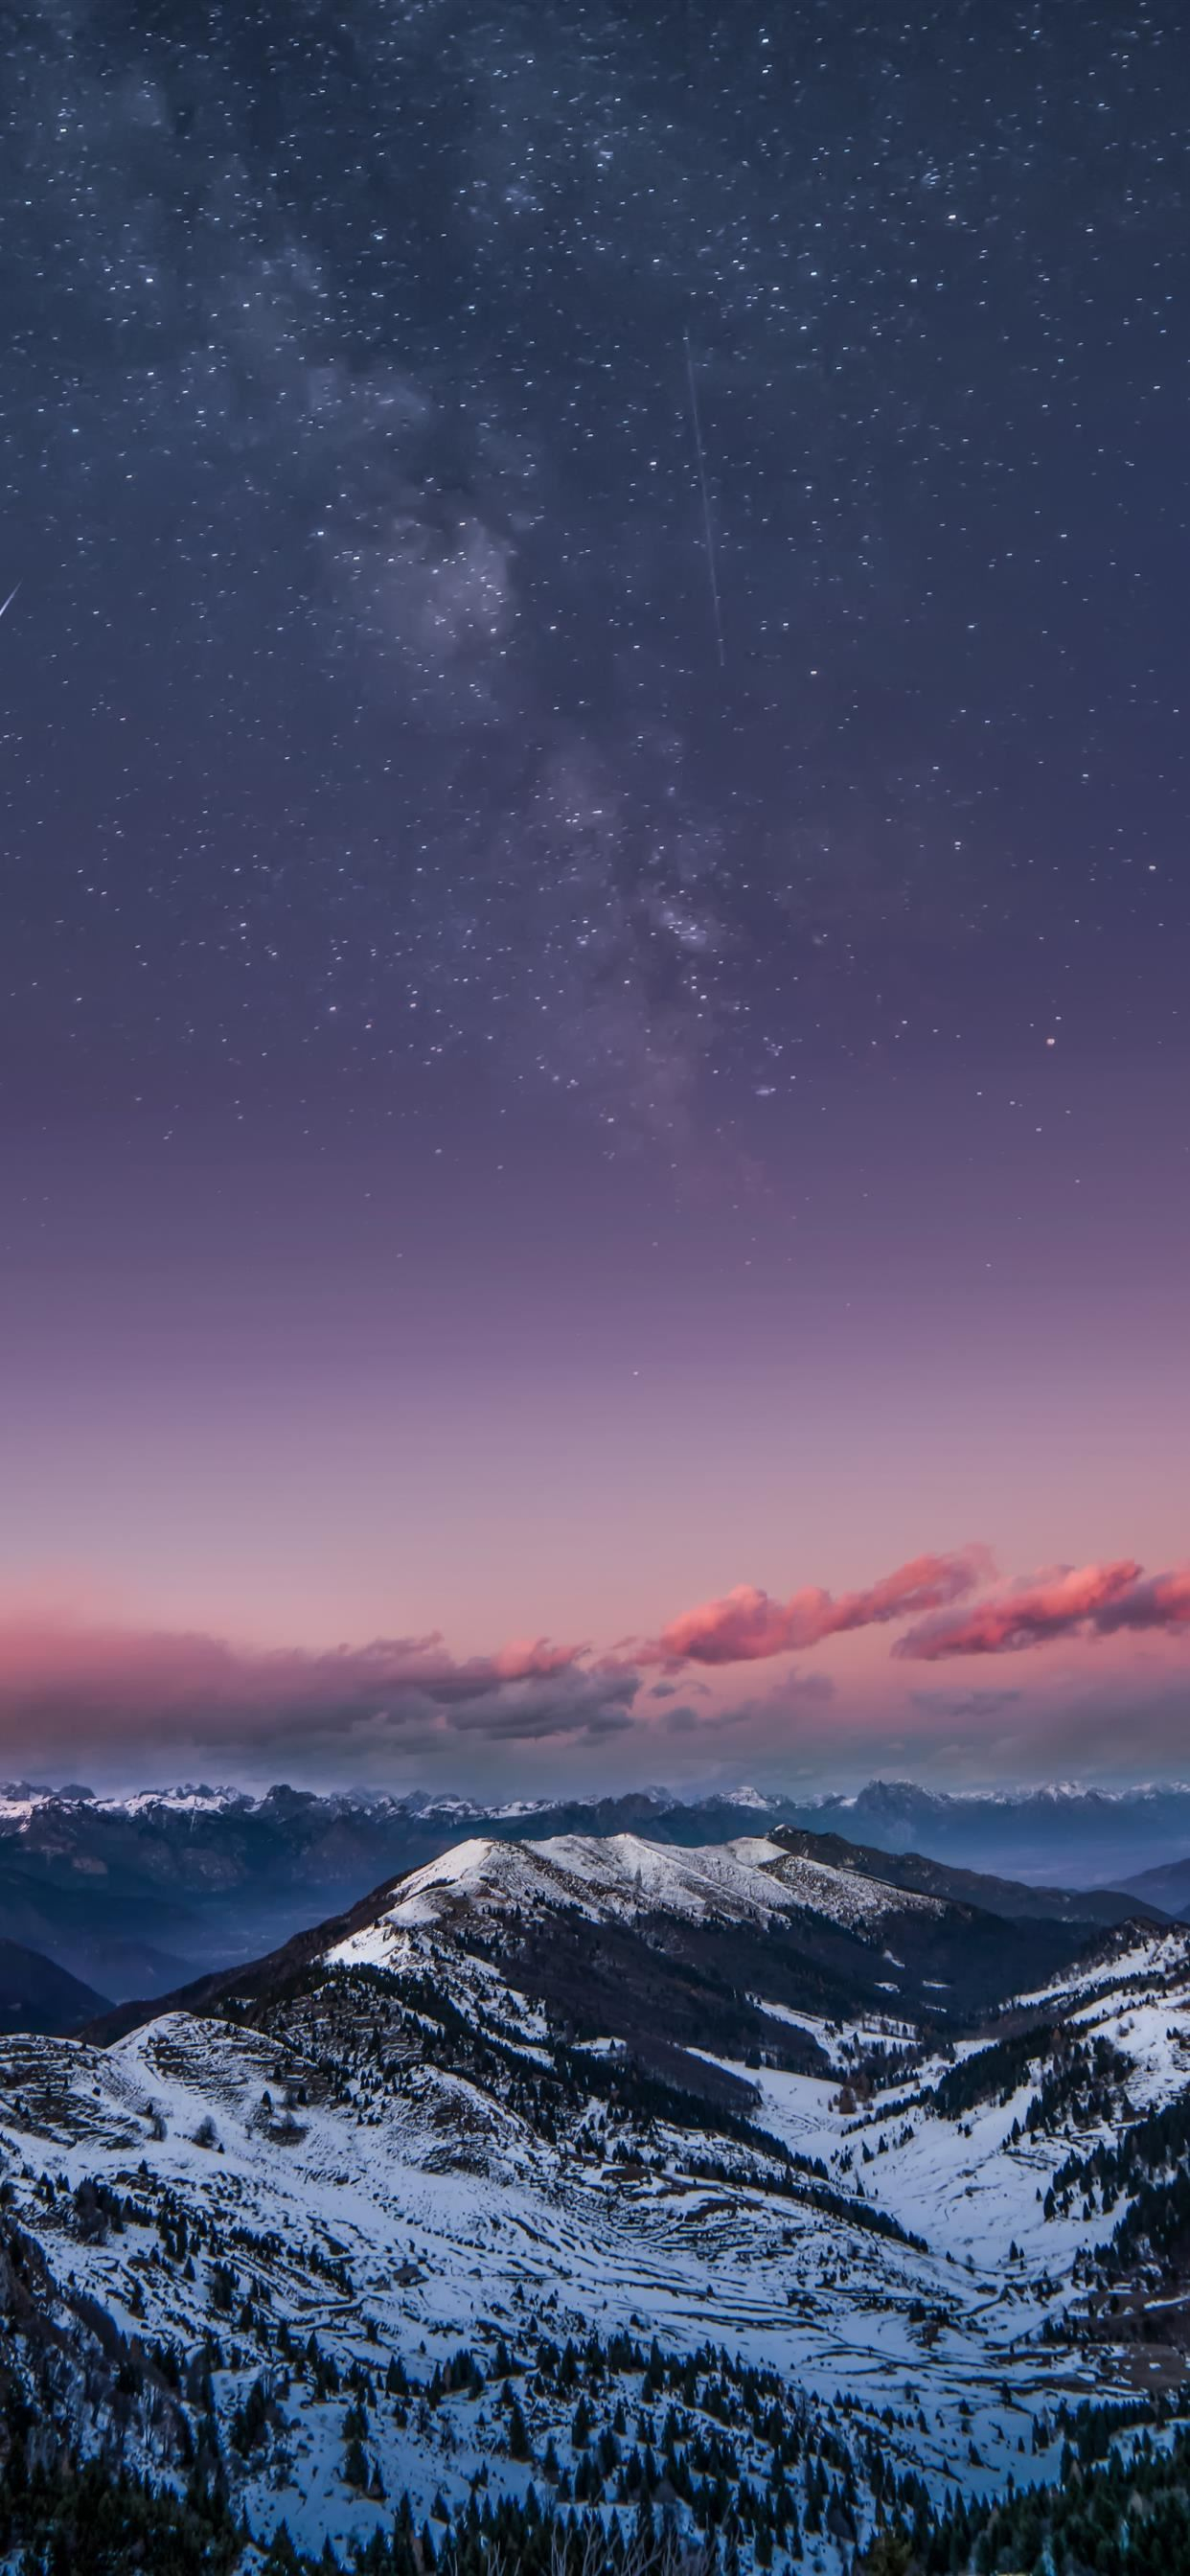 Mountain Milky Way Iphone Wallpapers Free Download